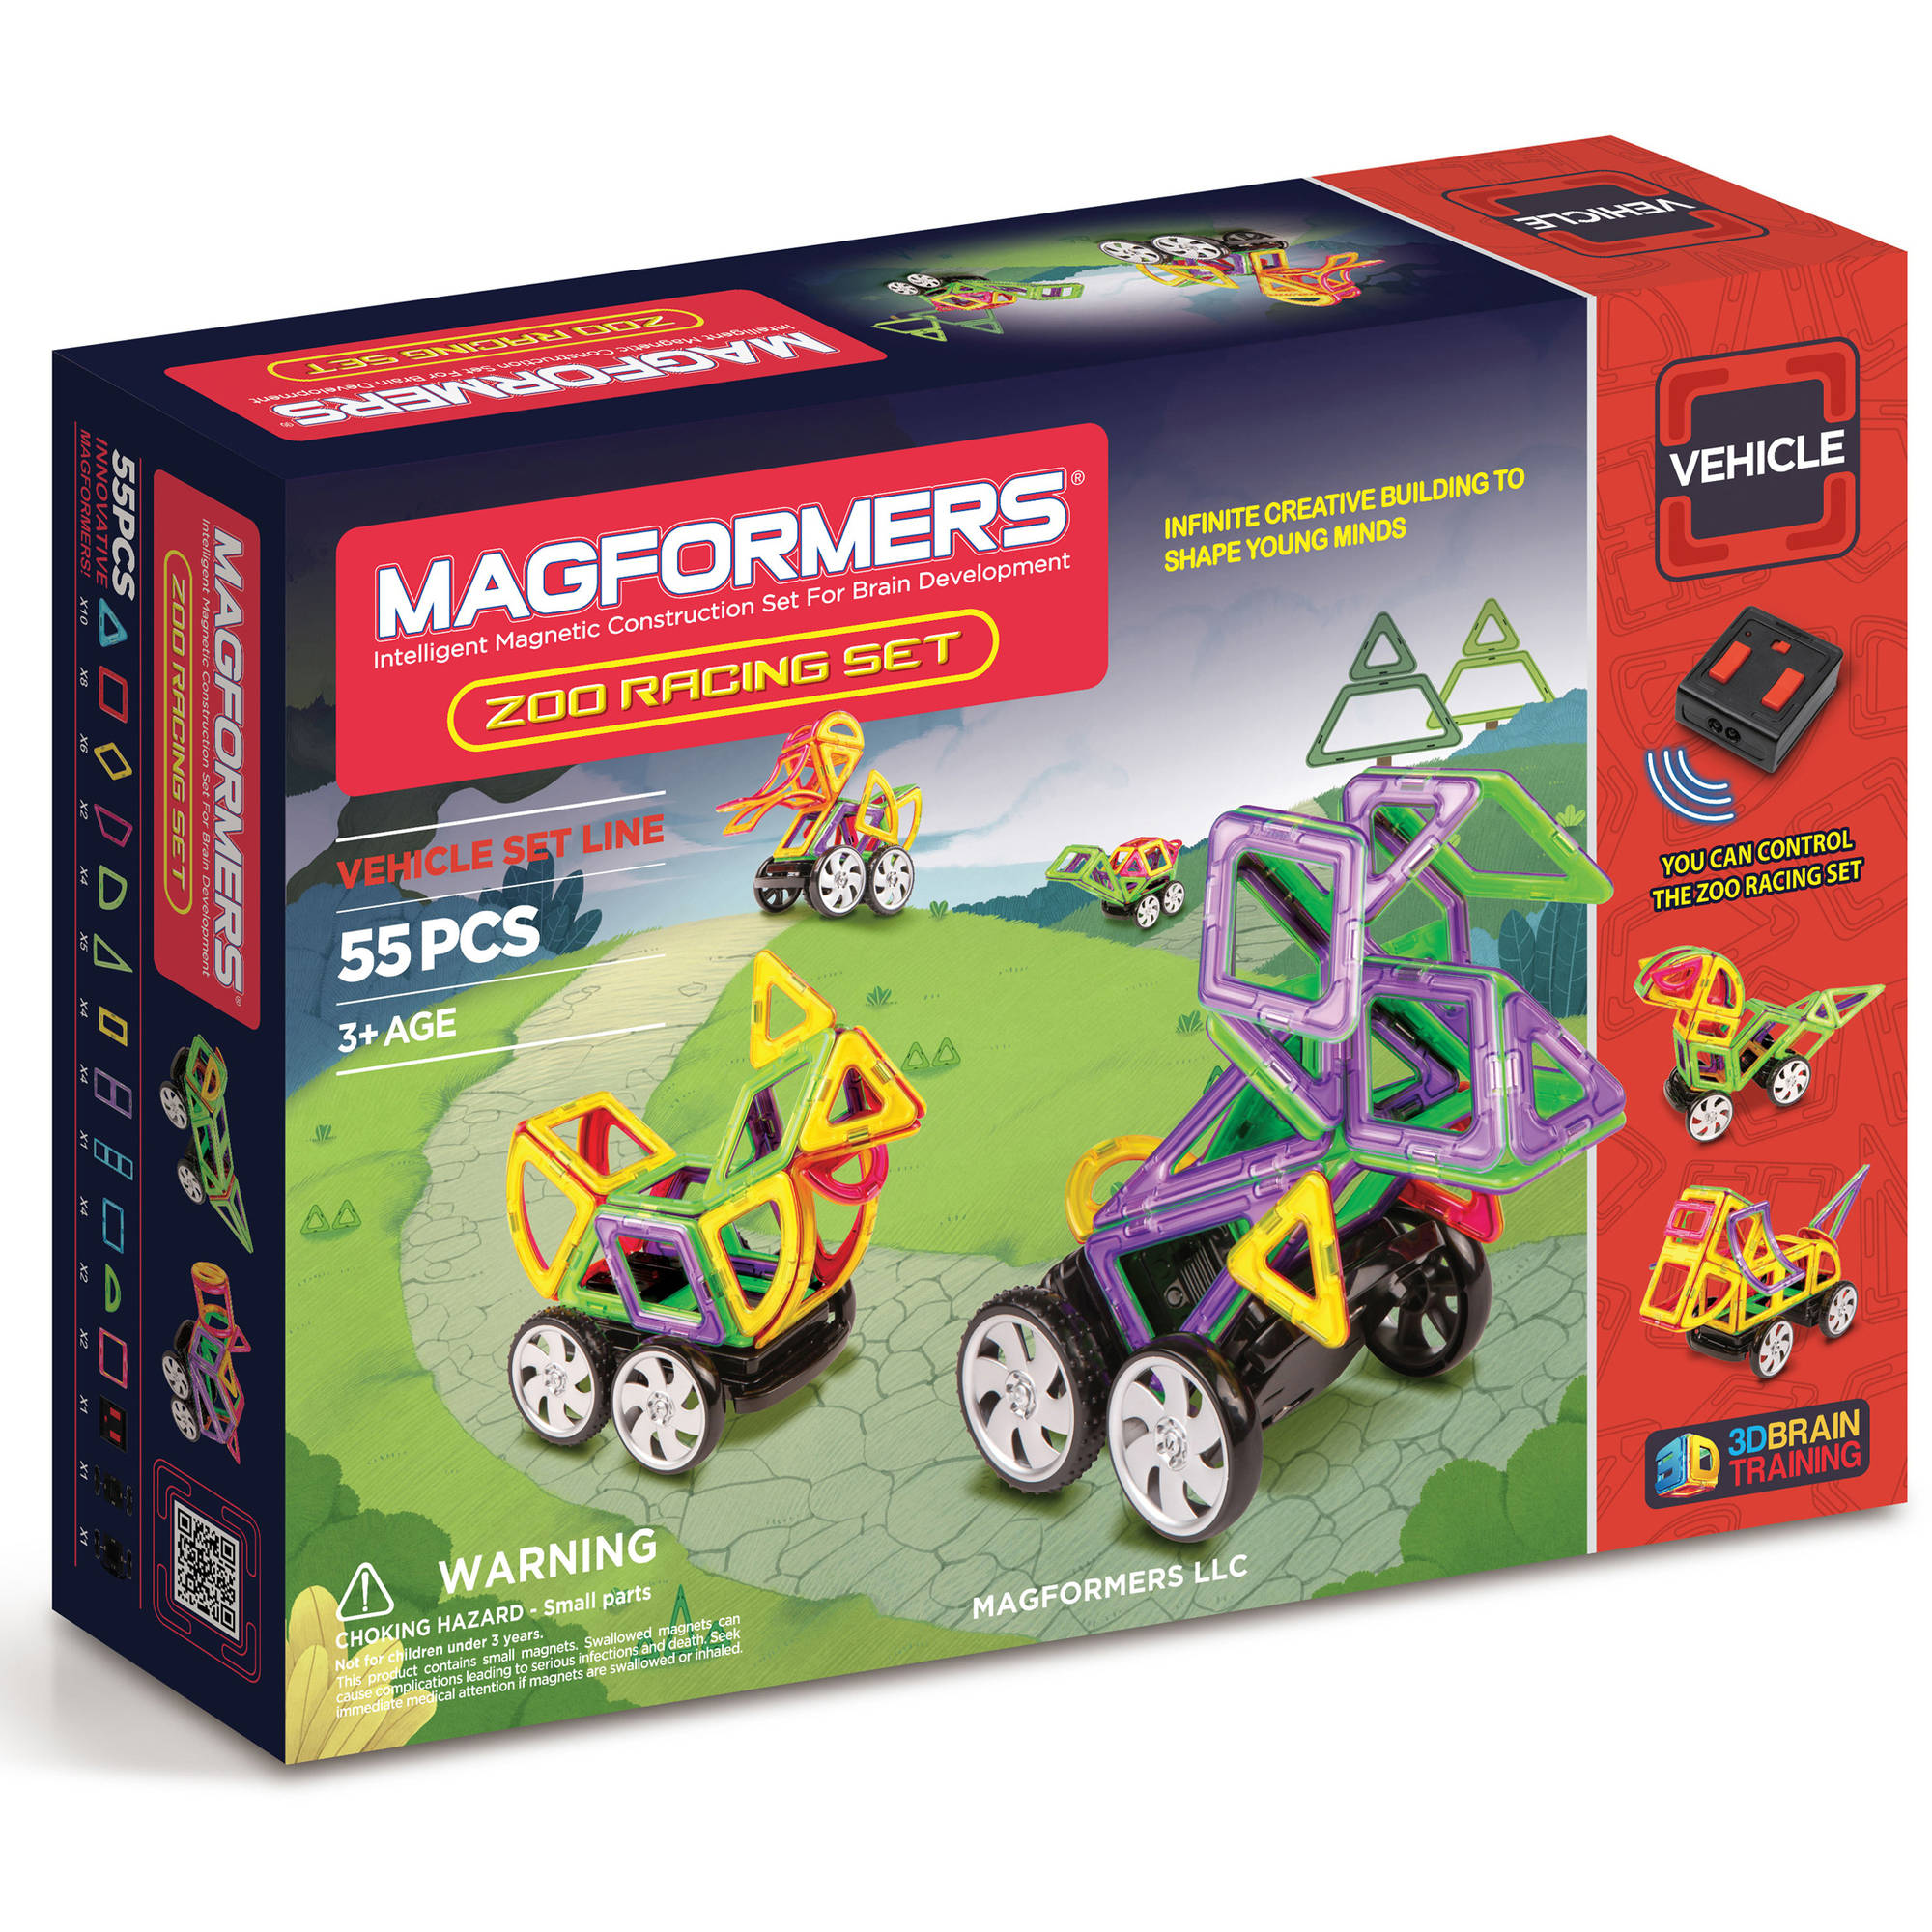 MagFORMERS Zoo Racing Set 55-Piece Magnetic Construction Set by Magformers